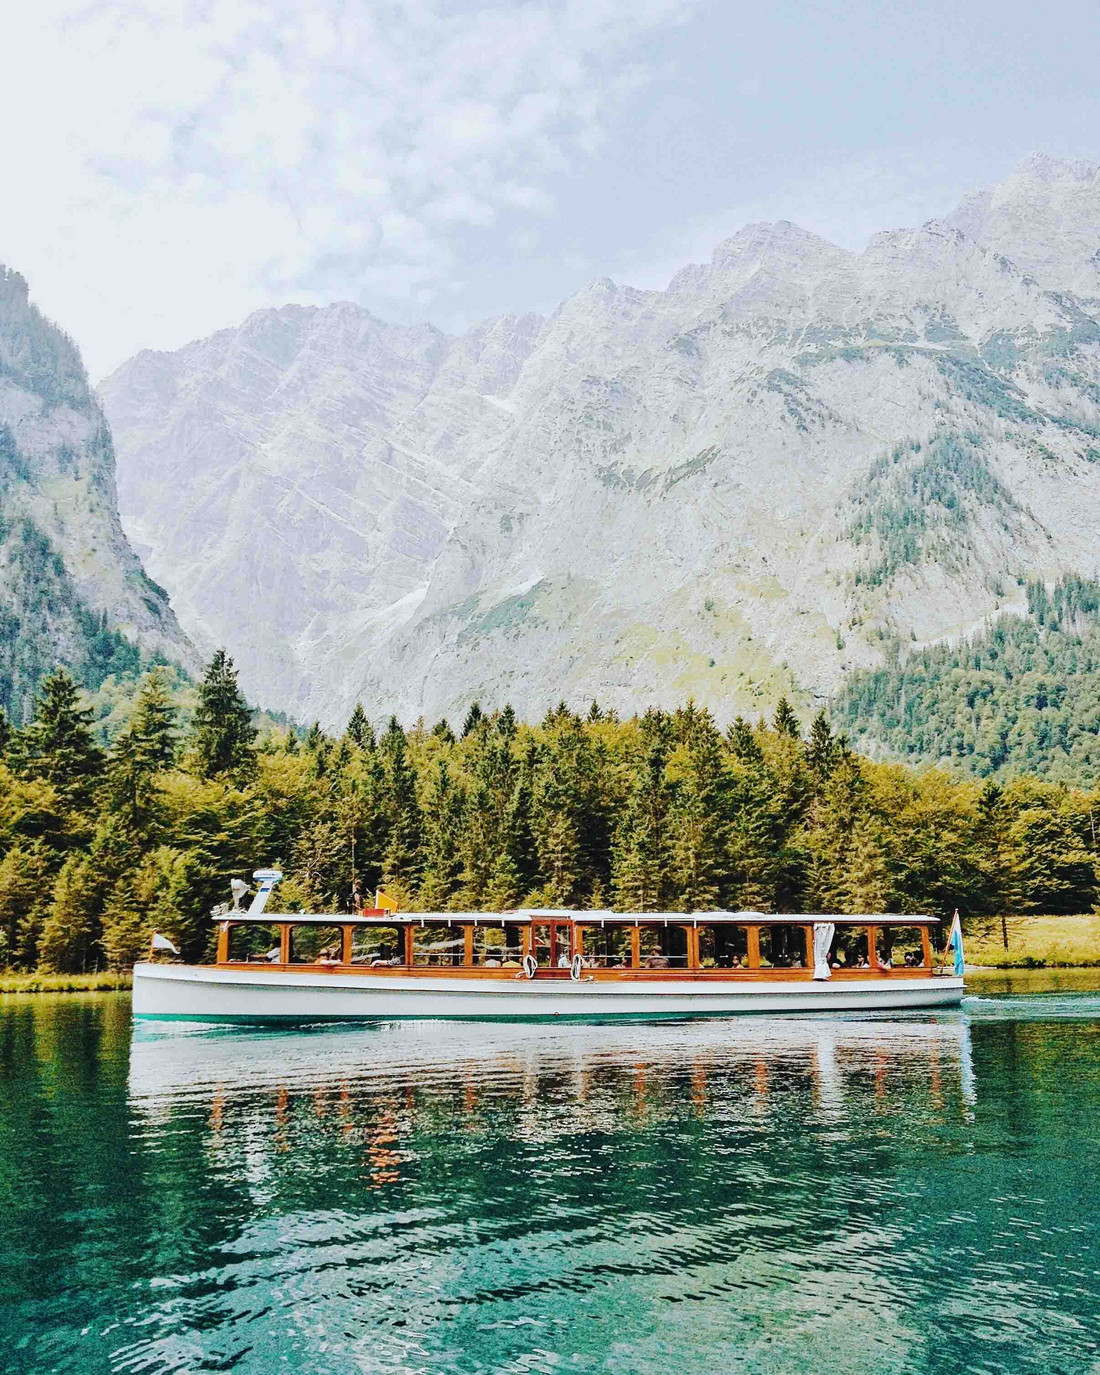 Electric boats on the Königssee: quiet and clean in unspoiled nature - Thursday, 22.03.2018